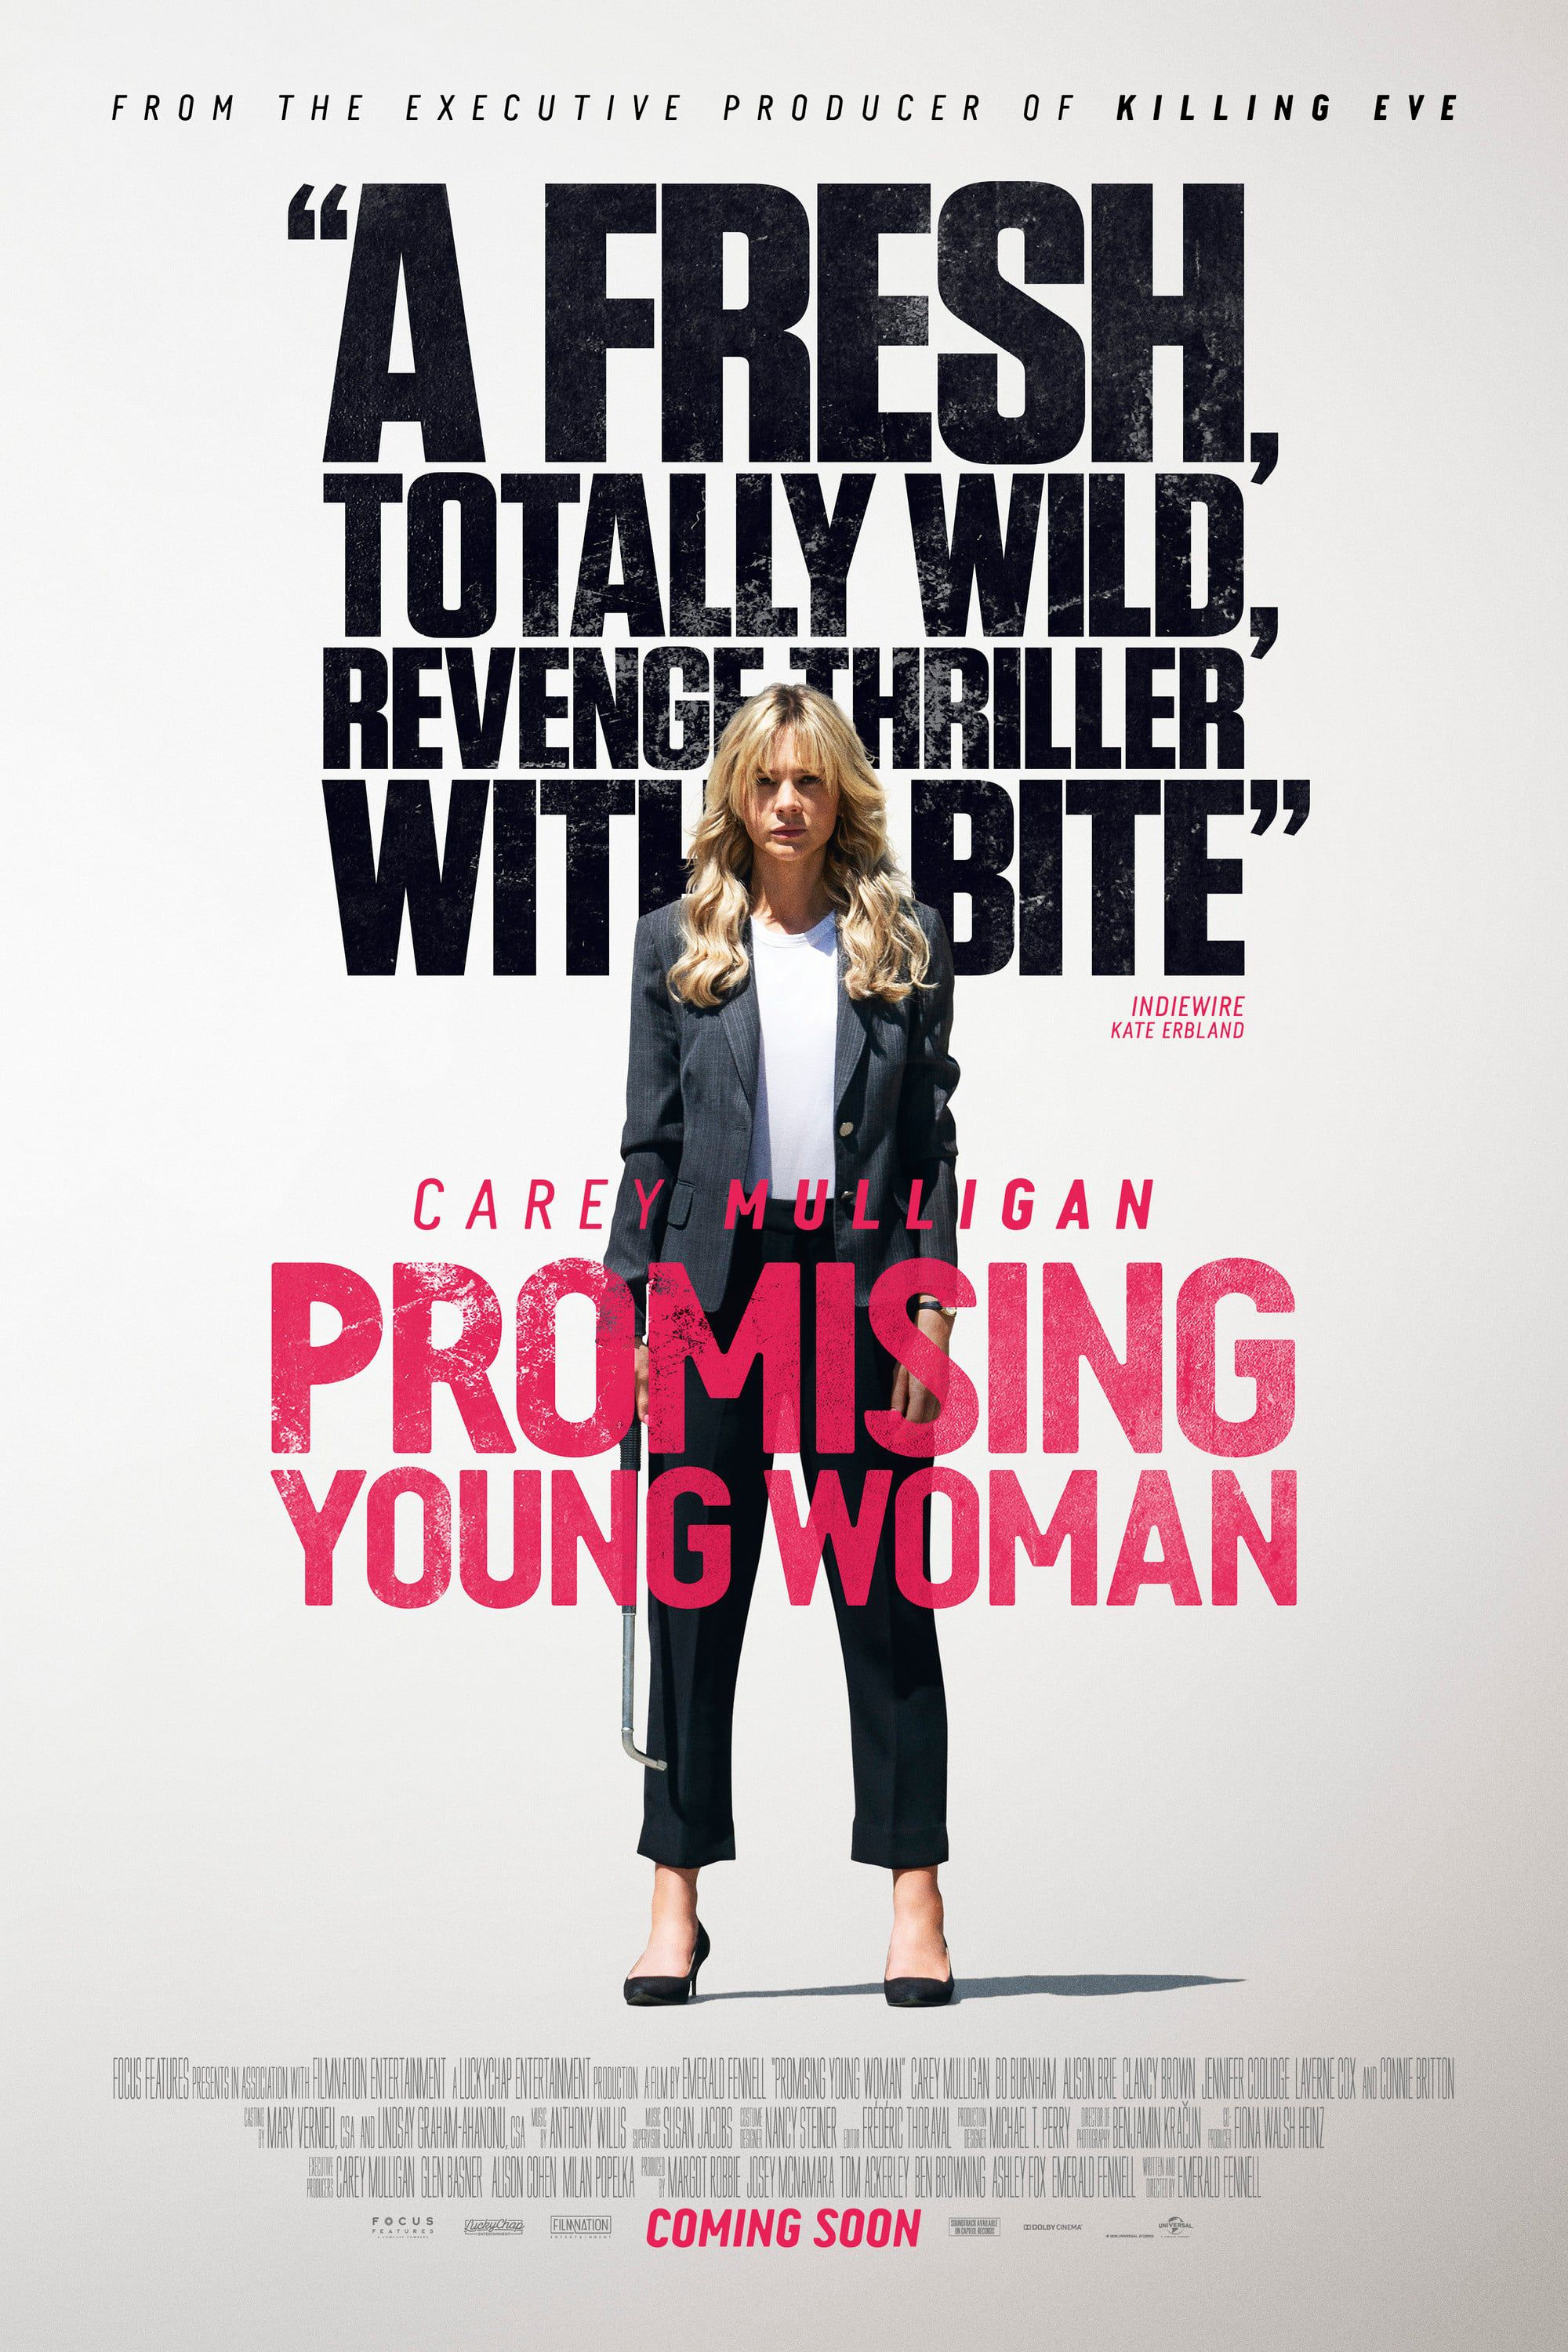 Voir Film Promising Young Woman - Film (2020) streaming VF gratuit complet